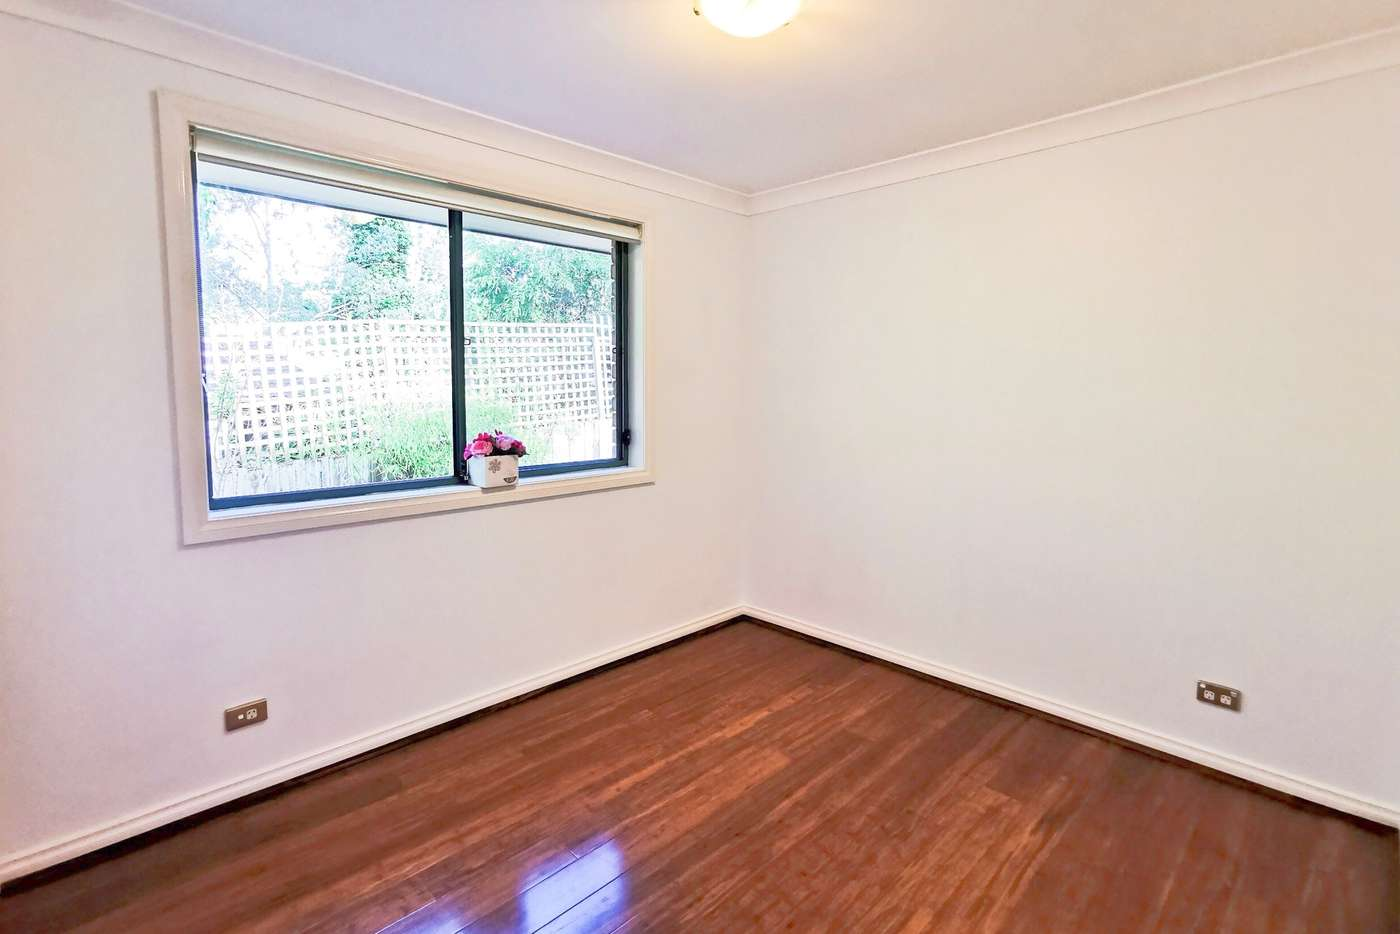 Seventh view of Homely villa listing, 4/59 Campbell Avenue, Normanhurst NSW 2076